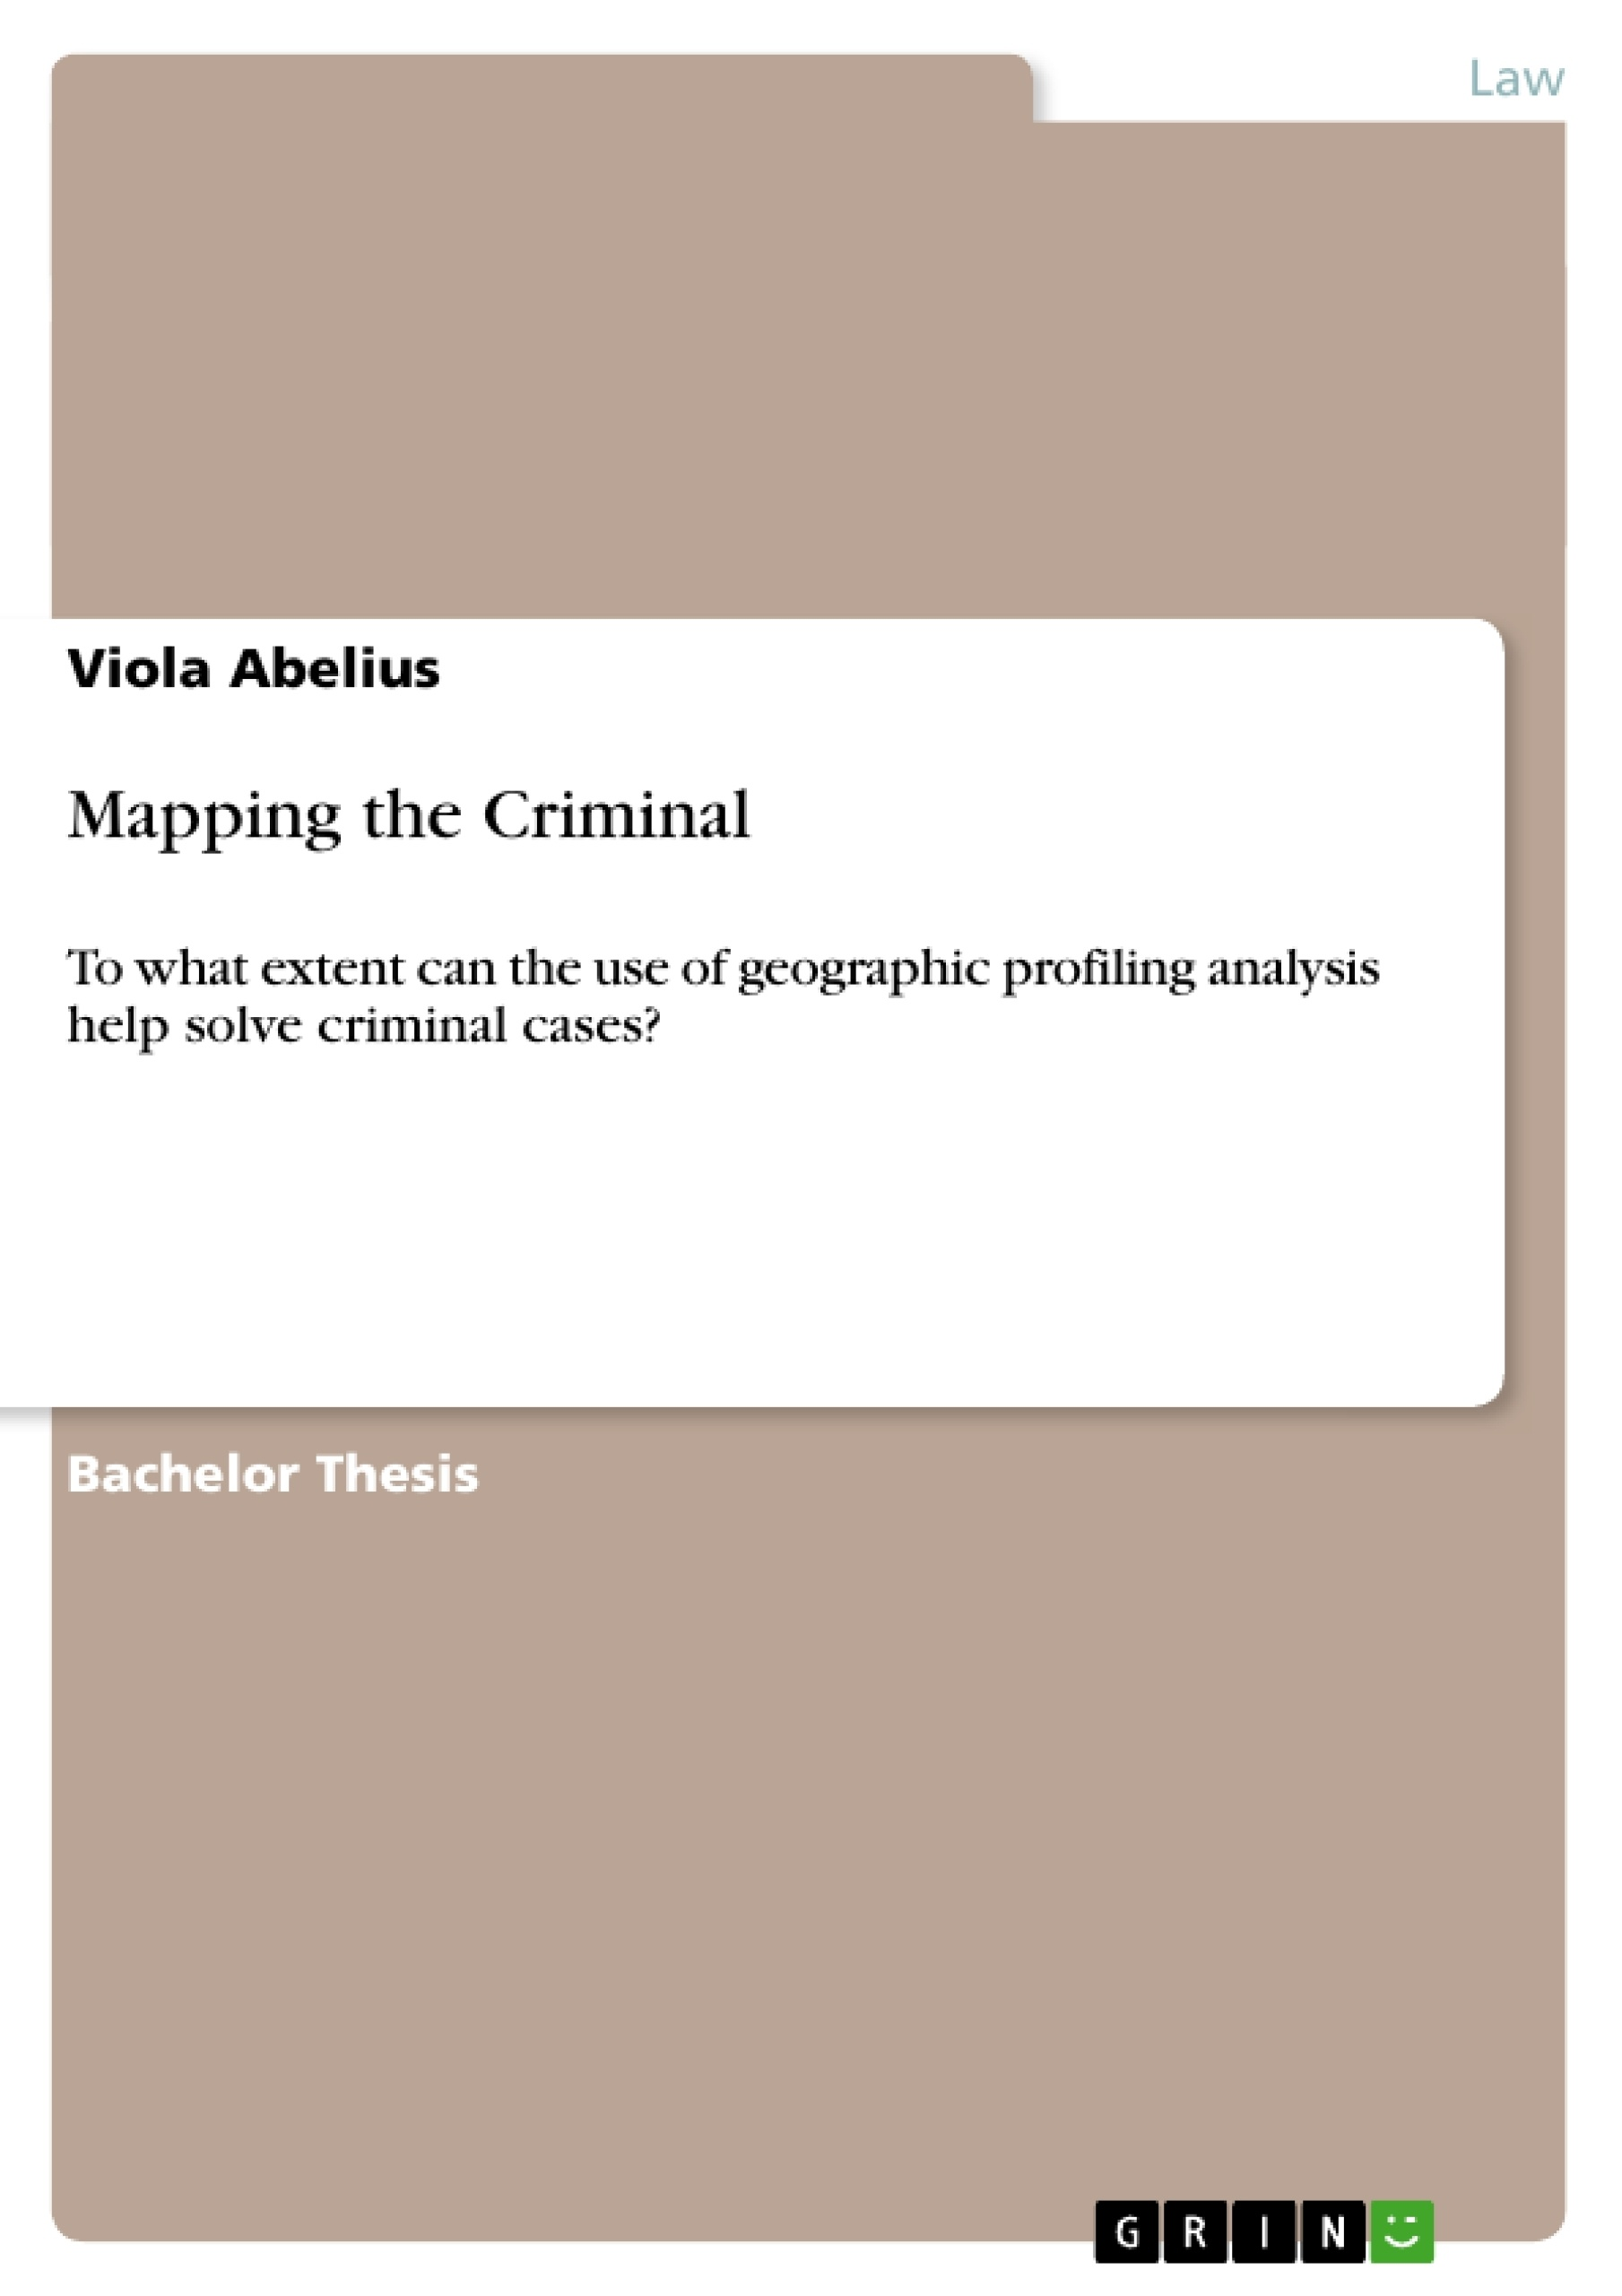 Title: Mapping the Criminal